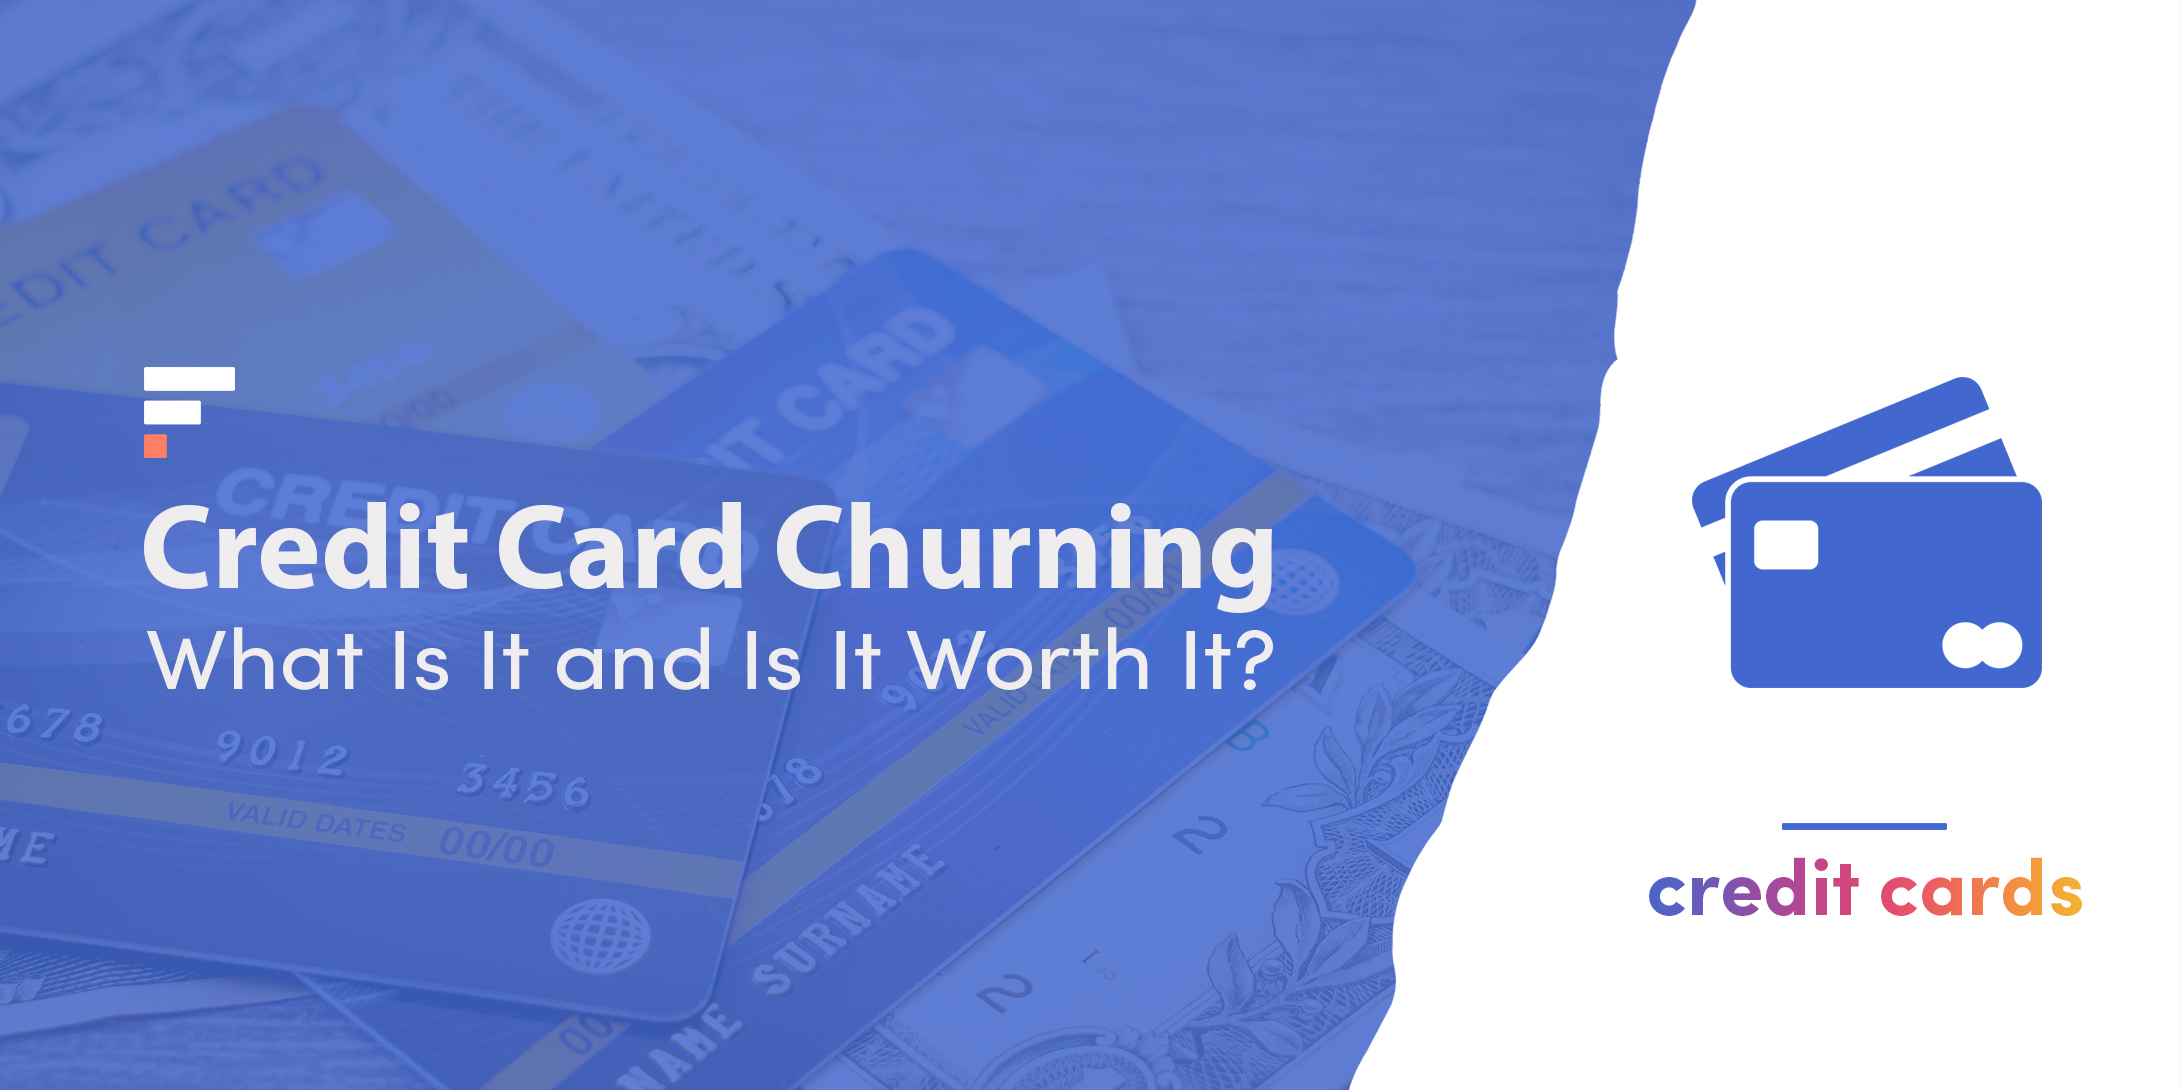 Credit Card Churning: What Is It and Is It Worth It?